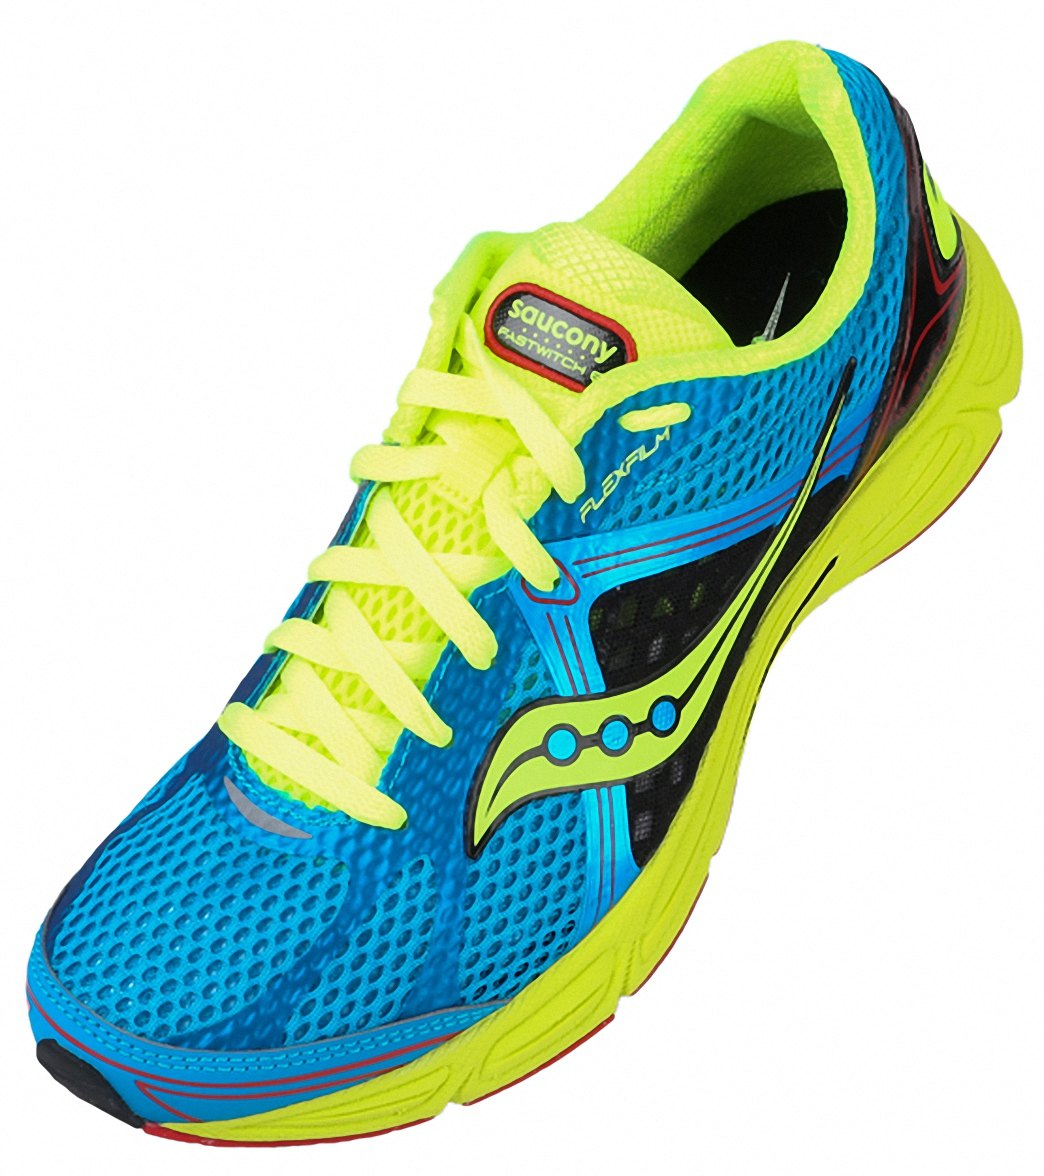 02e9214a2d94 Saucony Men s Fastwitch 6 Racing Shoes at SwimOutlet.com - Free Shipping